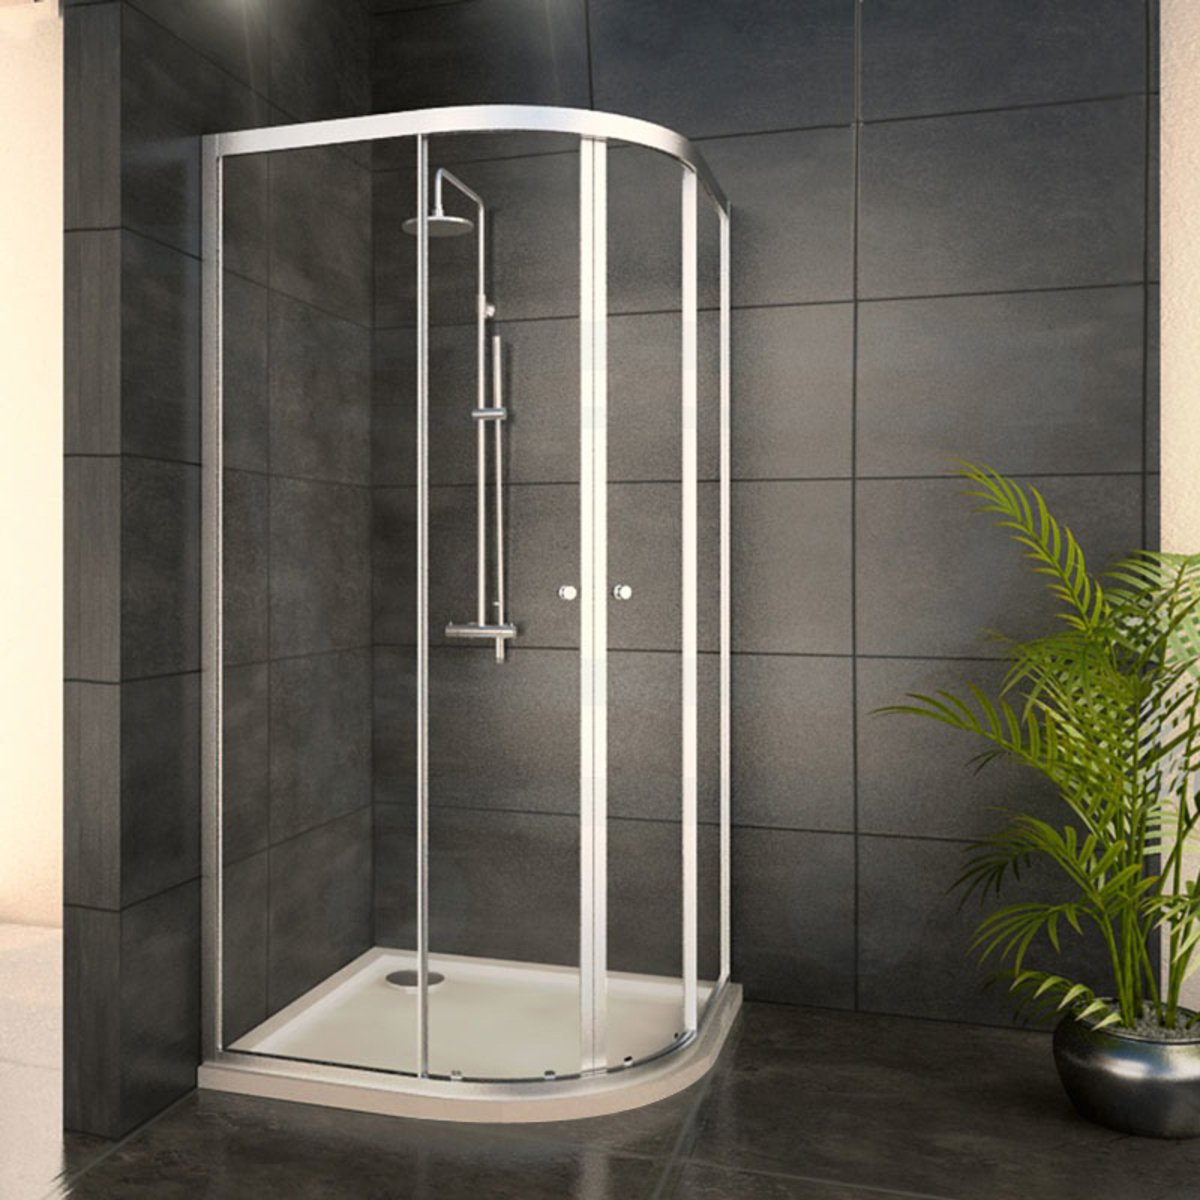 adema glass cabine de douche quart de rond avec 2 portes coulissantes 80x80x185cm vitre claire. Black Bedroom Furniture Sets. Home Design Ideas